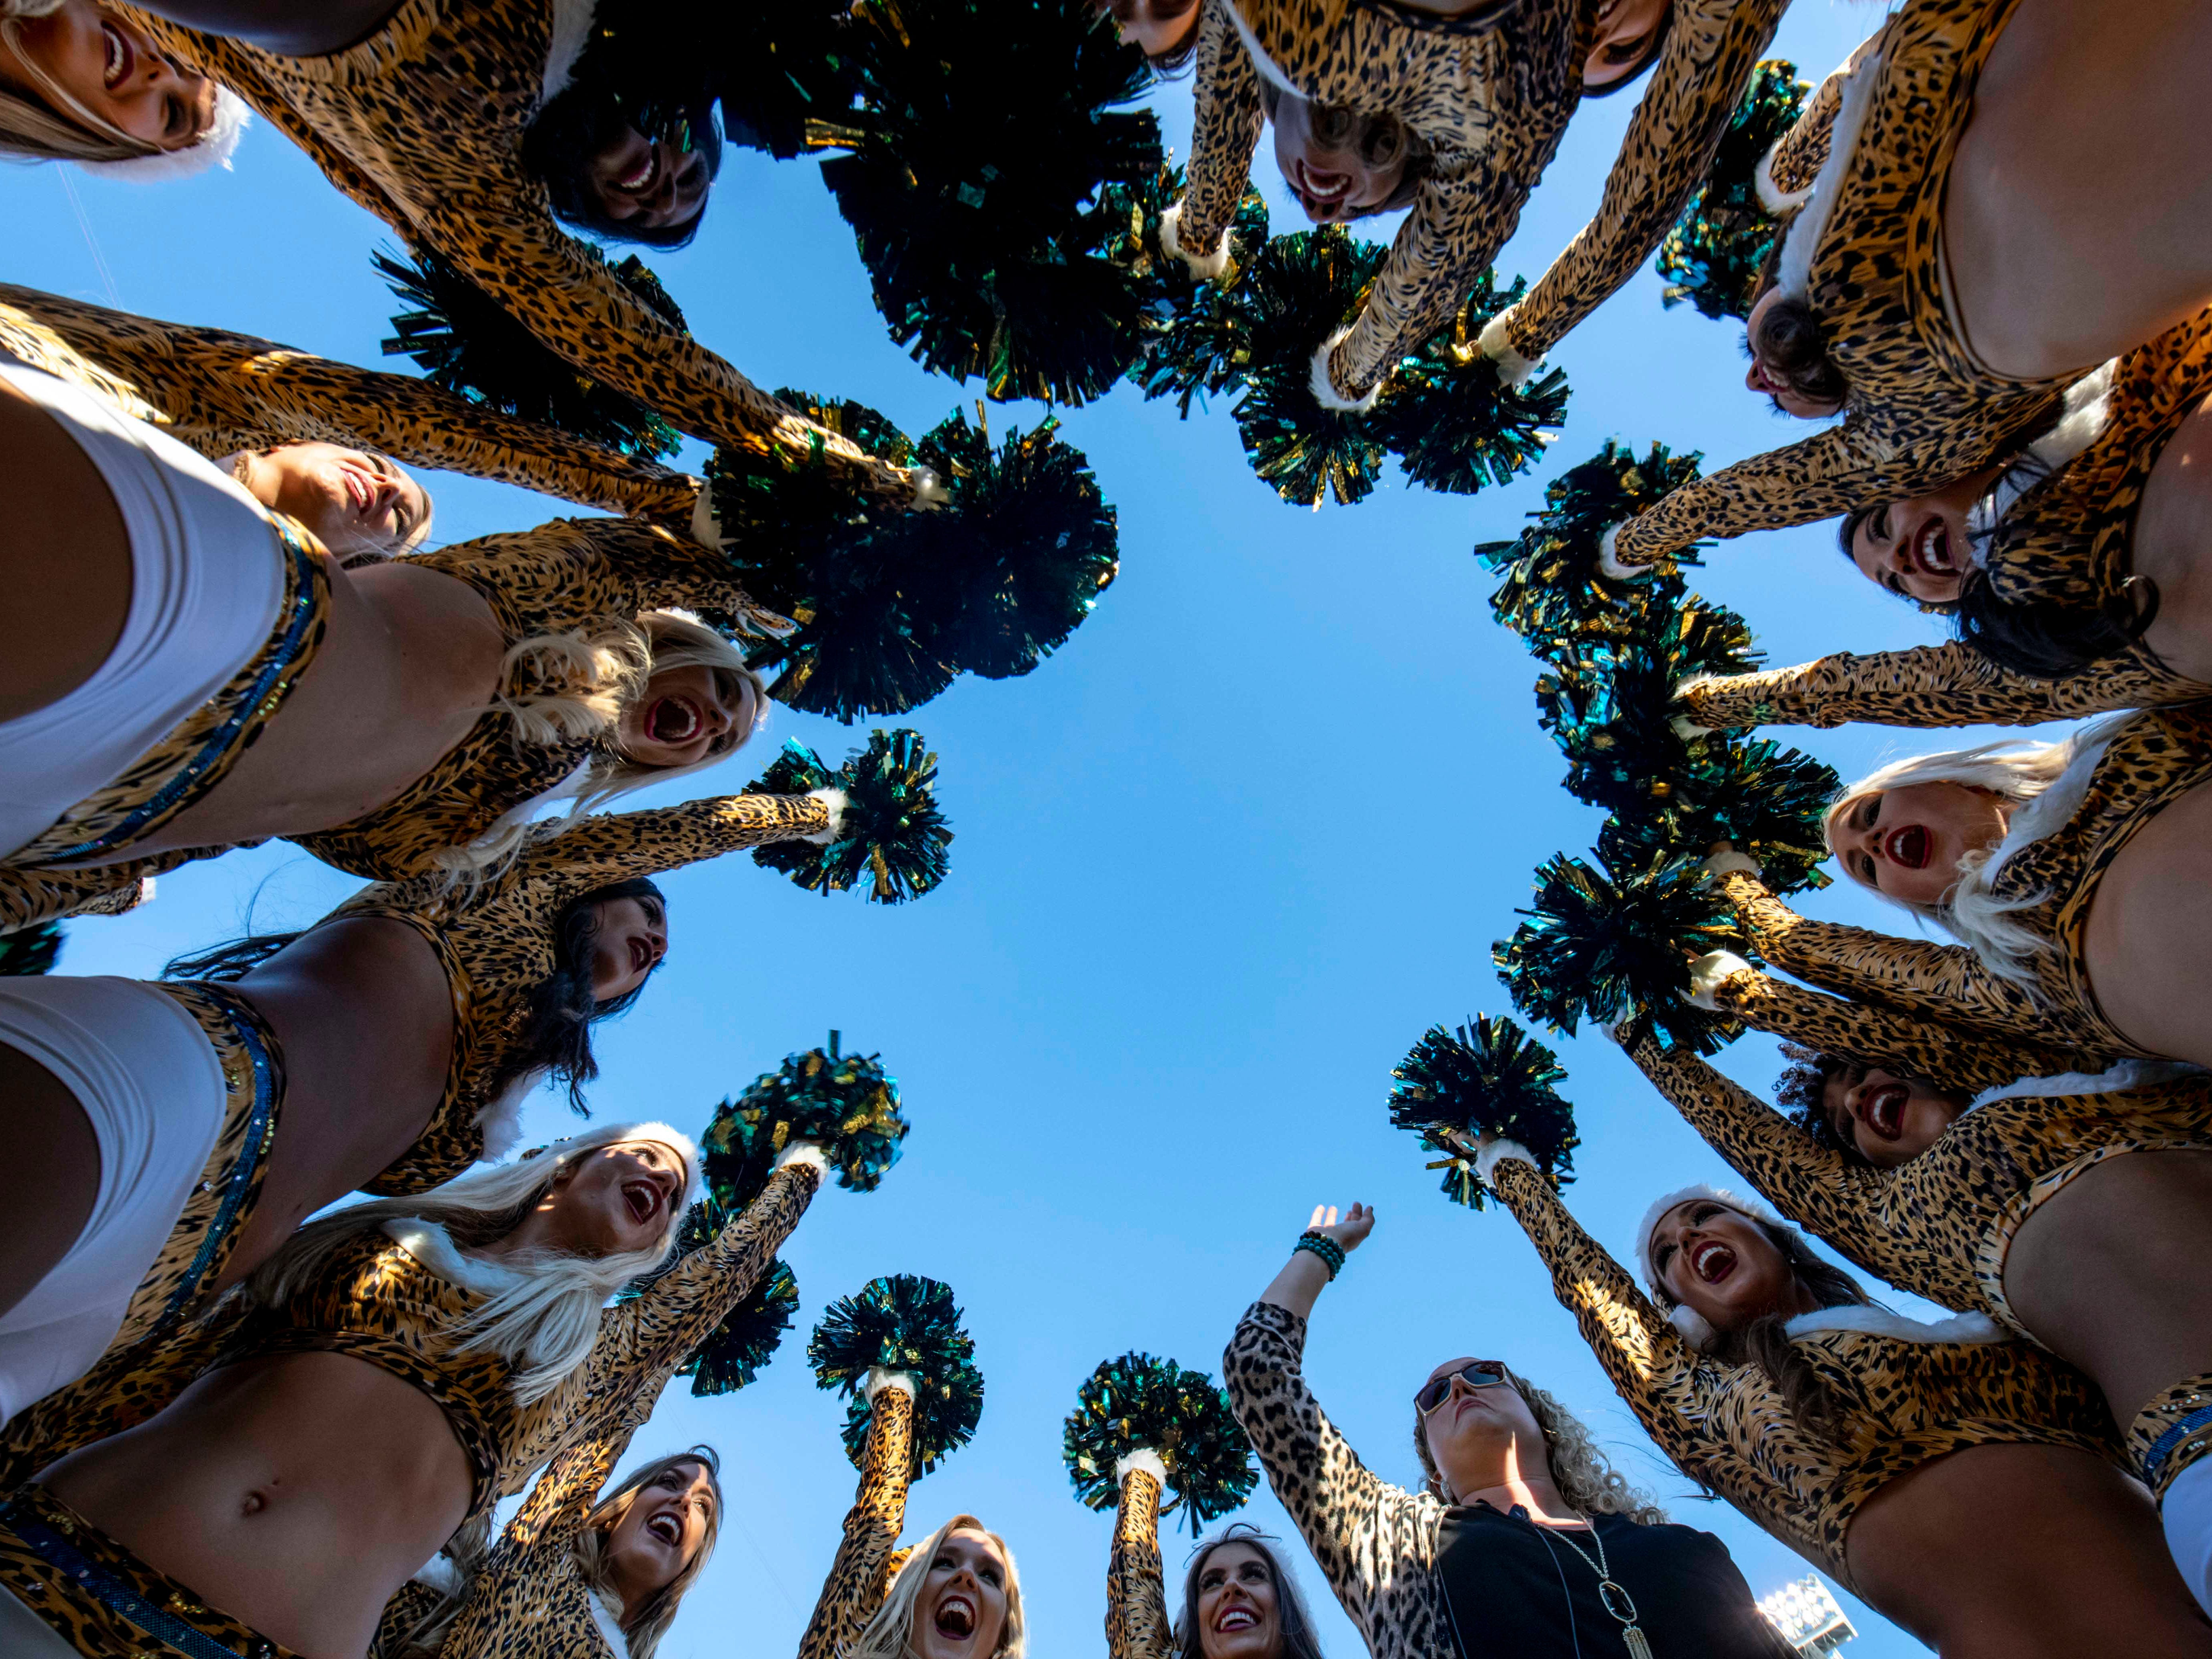 Week 15: Jacksonville Jaguars cheerleaders make a final cheer in a huddle after the last home game of the season at TIAA Bank Field. The Washington Redskins won the game, 16-13.